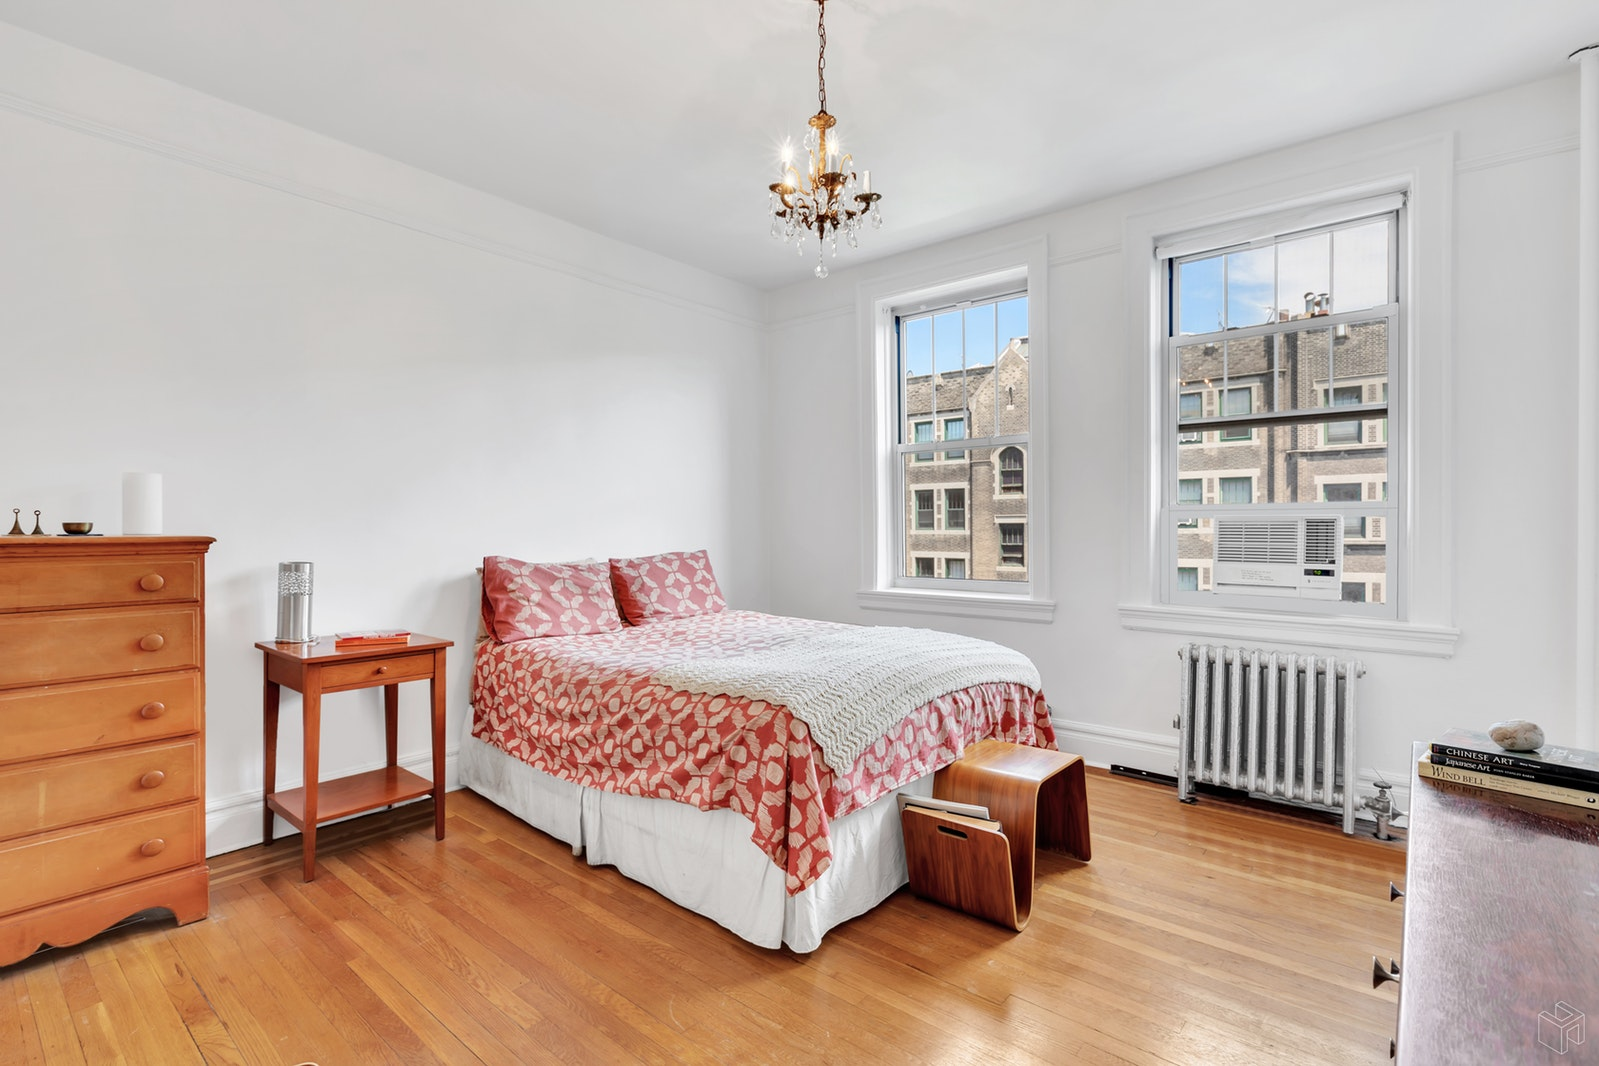 1 Br With PRE-WAR Elegance!, Jackson Heights, Queens, NY, 11372, $310,000, Sold Property, Halstead Real Estate, Photo 2